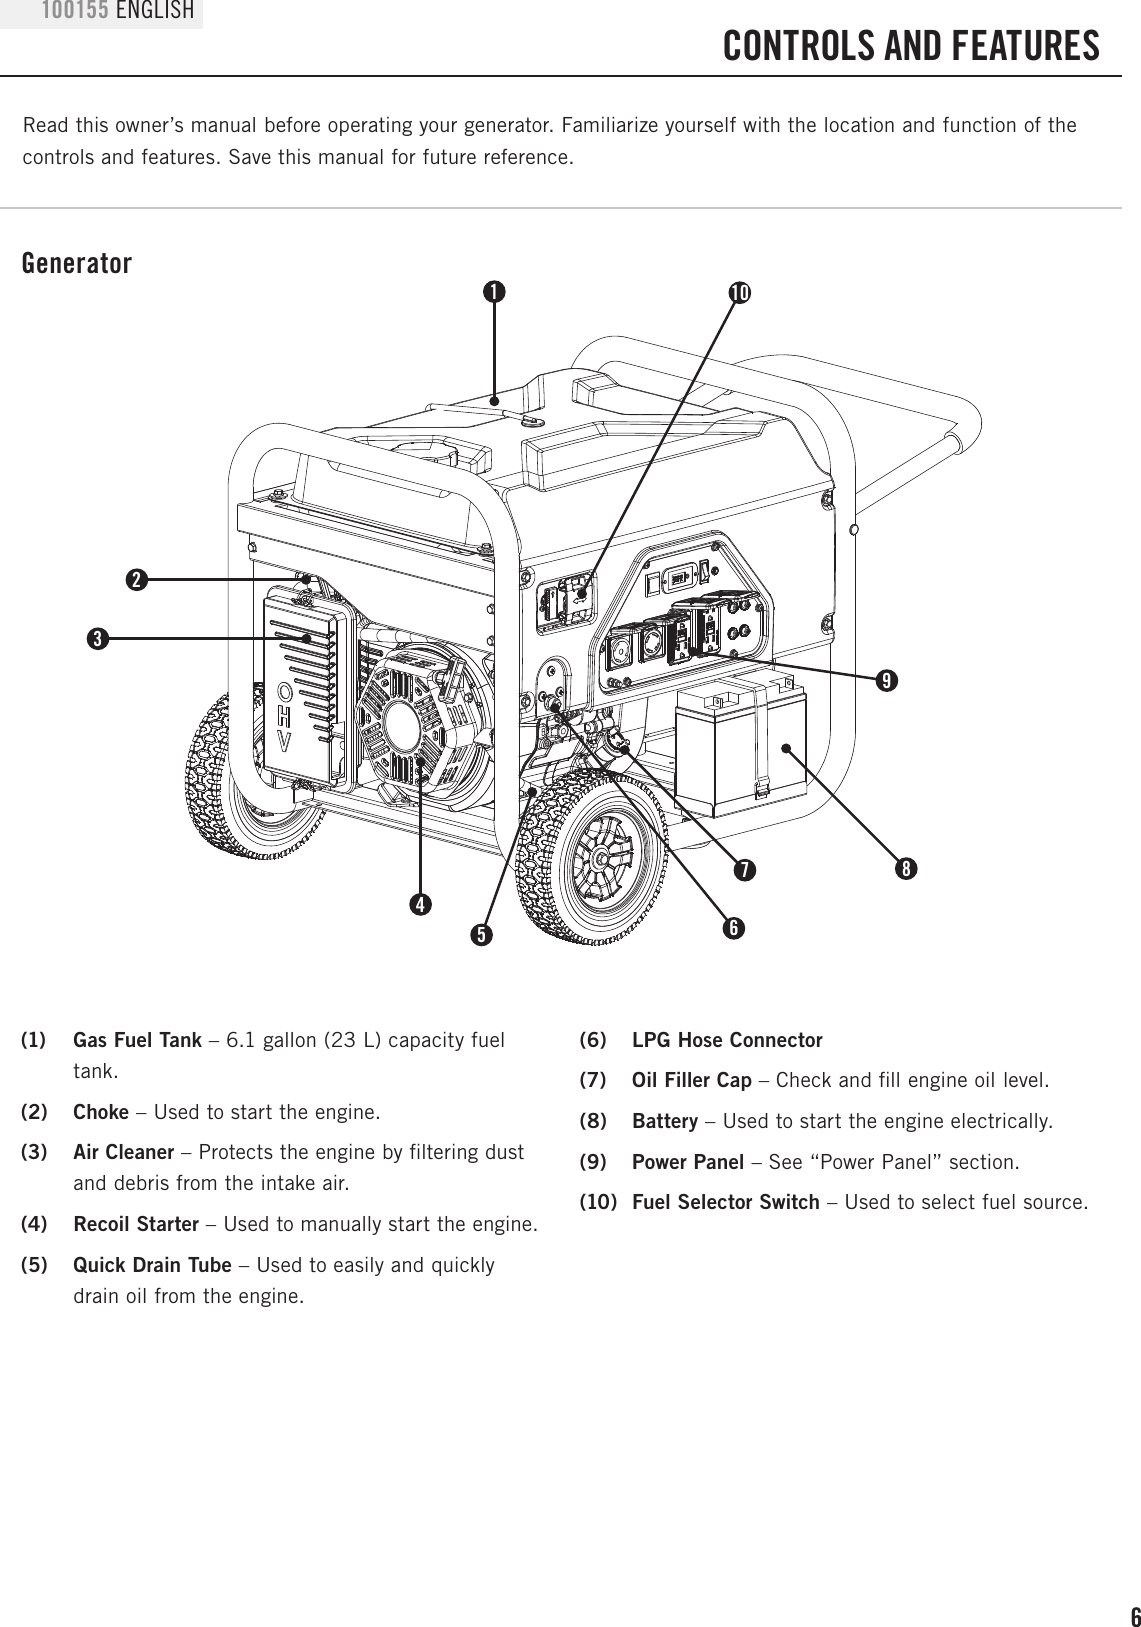 Champion Power Equipment 100155 Owners Manual 100155_manual